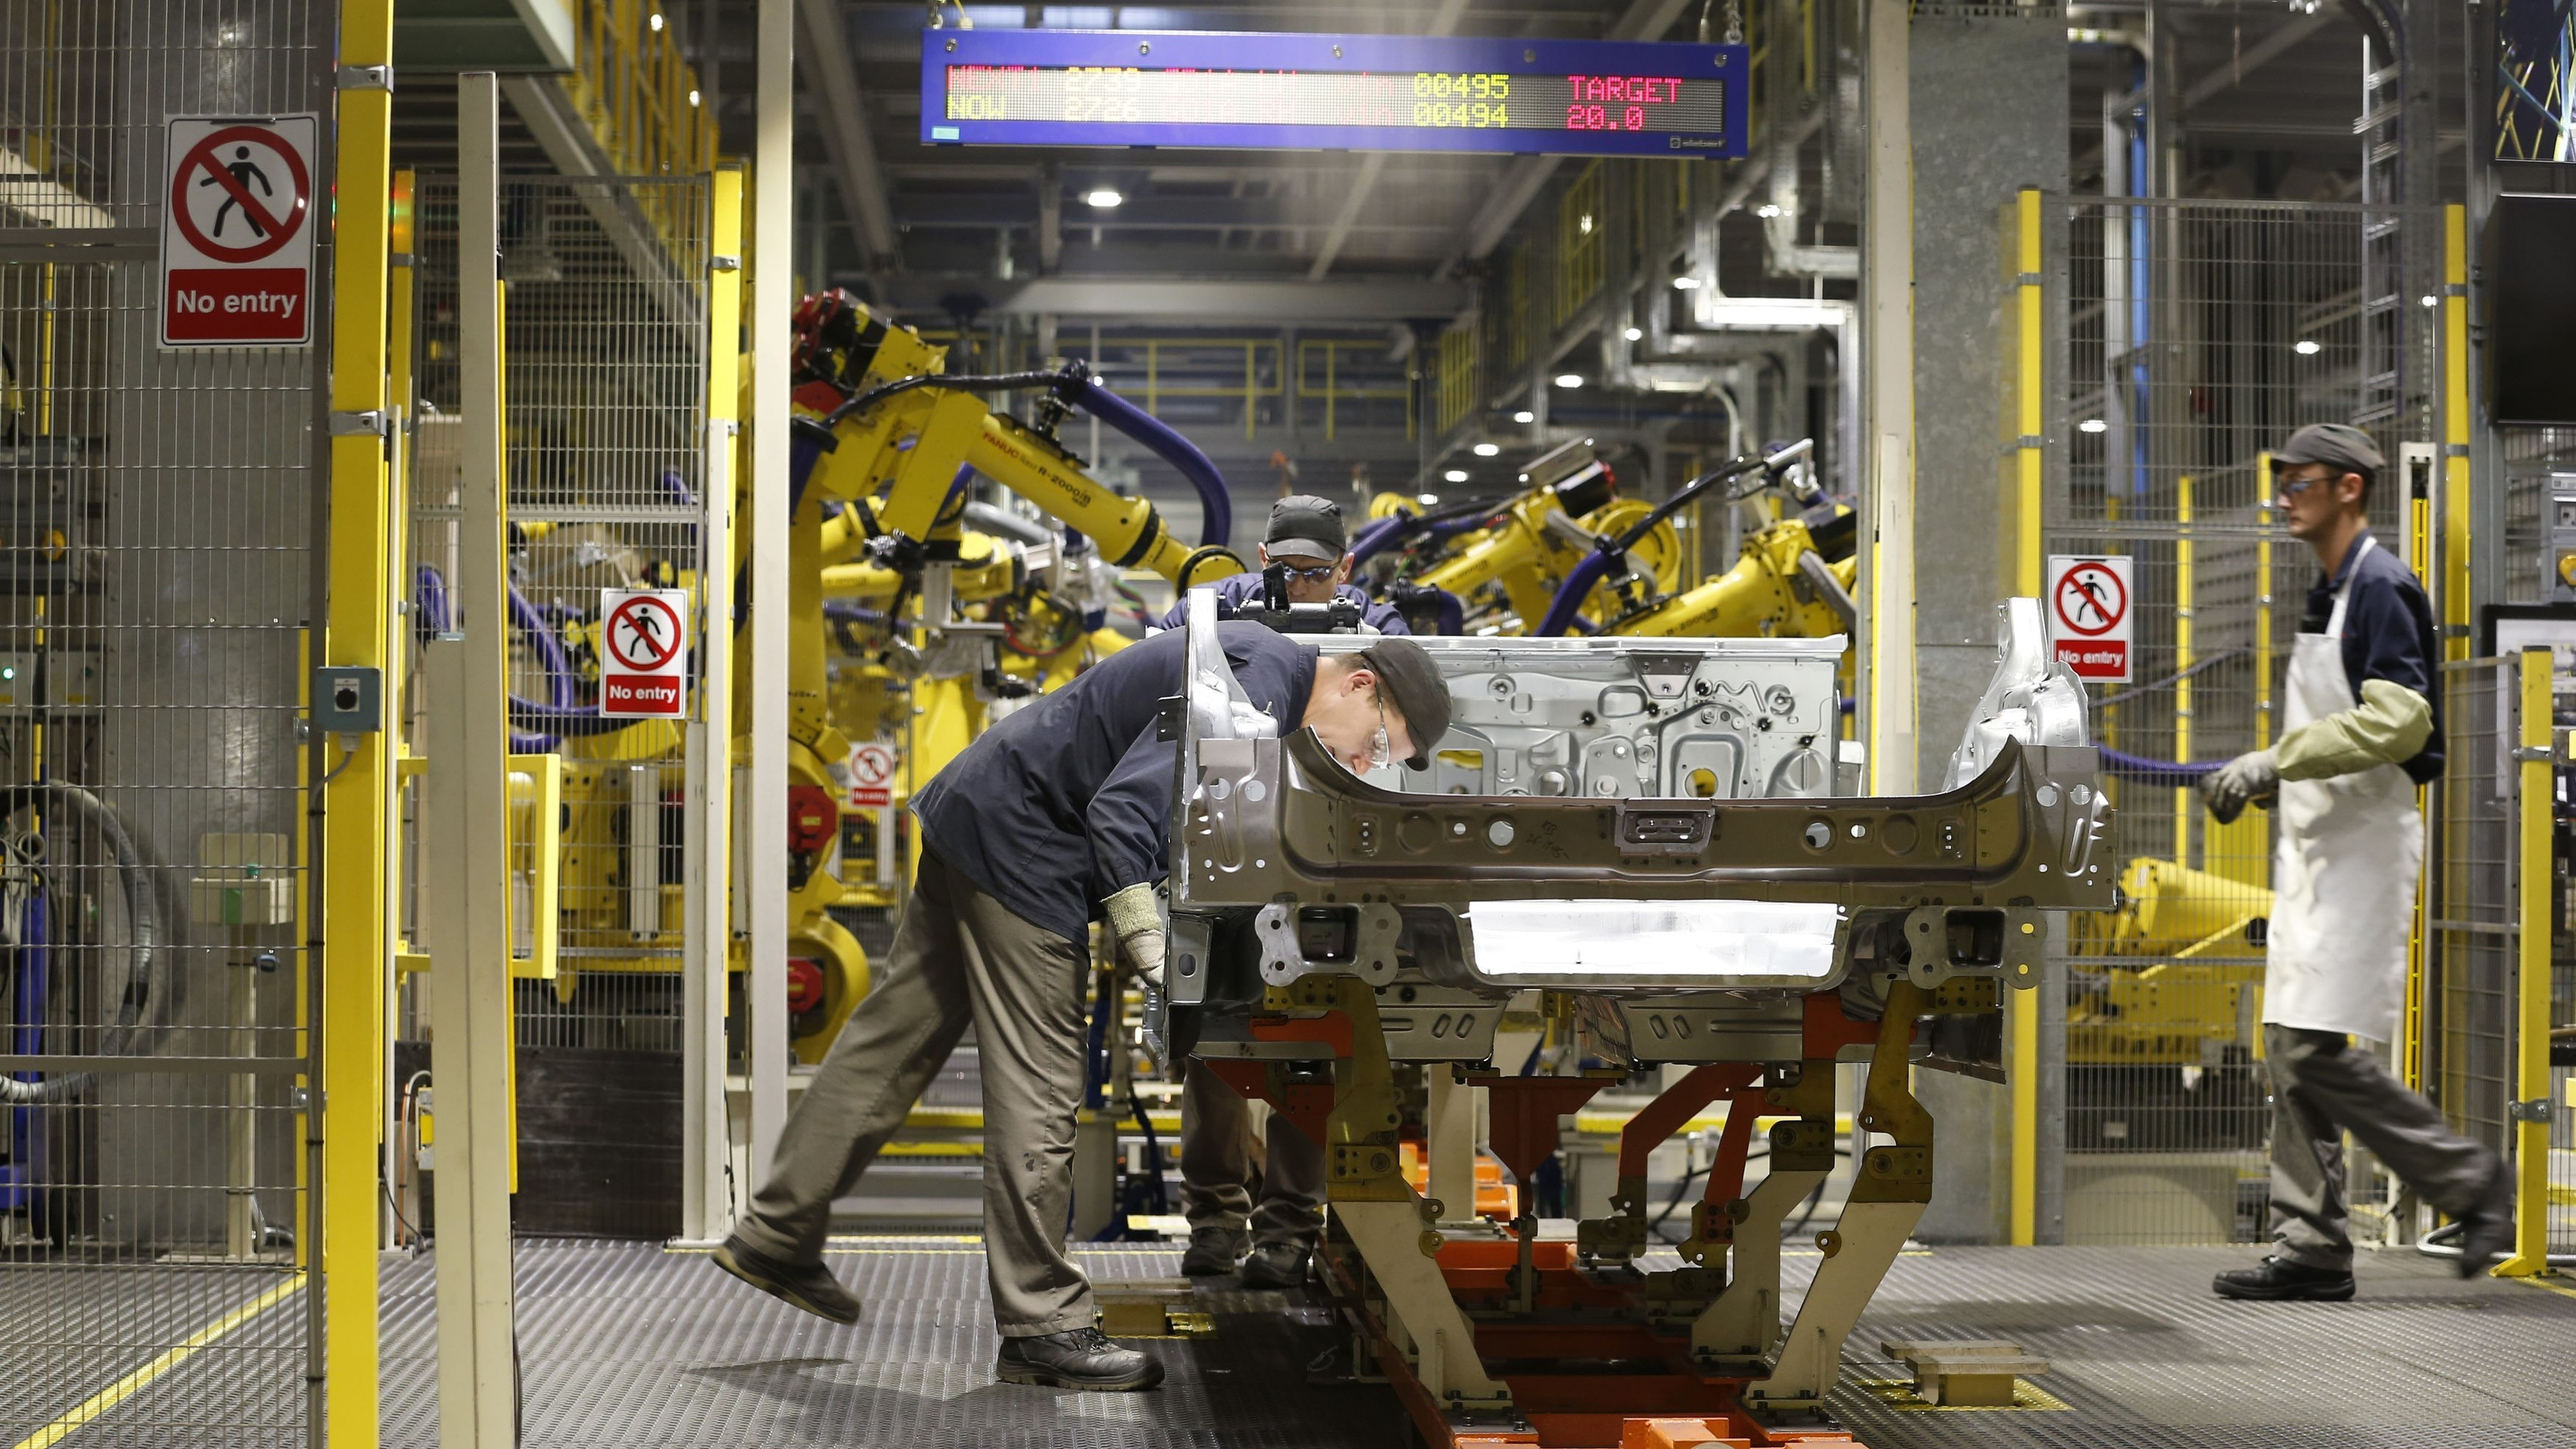 government offered nissan up to 80m in 2016 to build new cars in uk